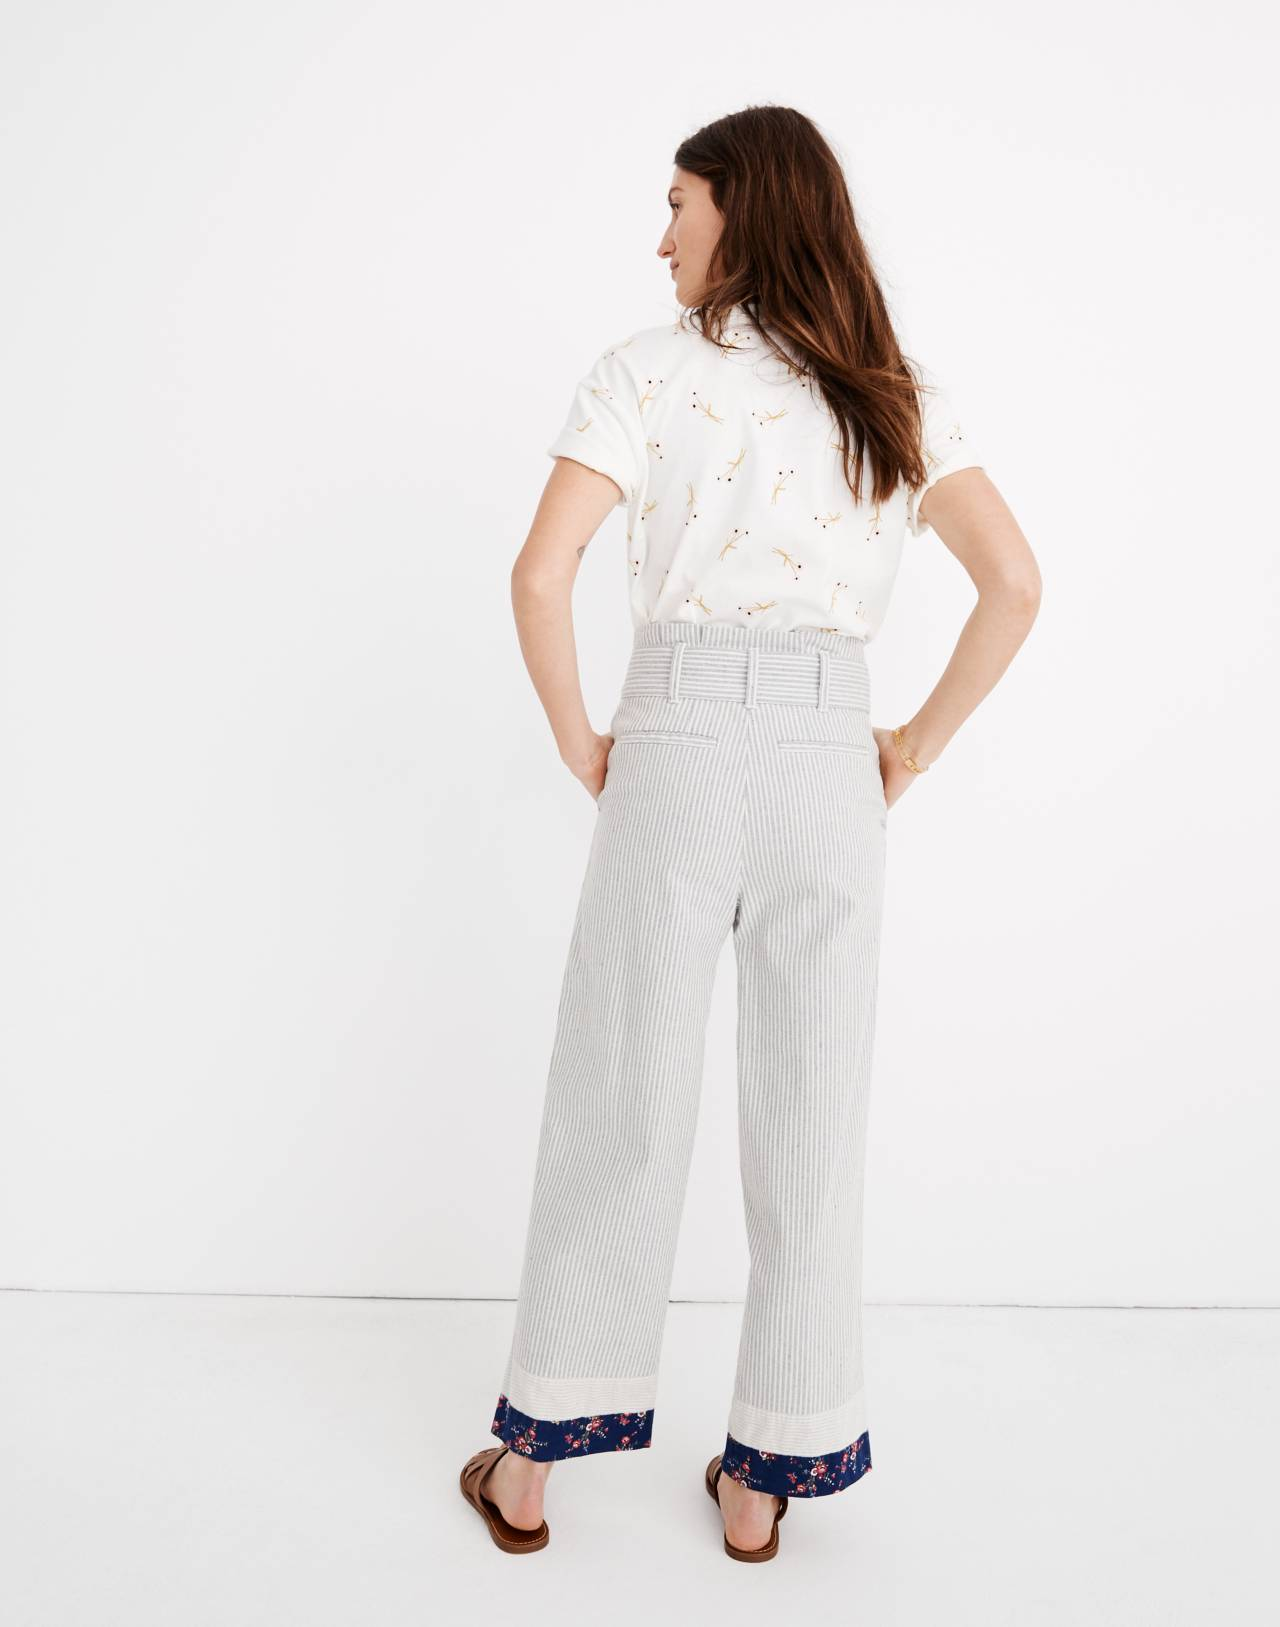 Madewell x The New Denim Project® Patchwork Paperbag Pants in blue railroad stripe image 3